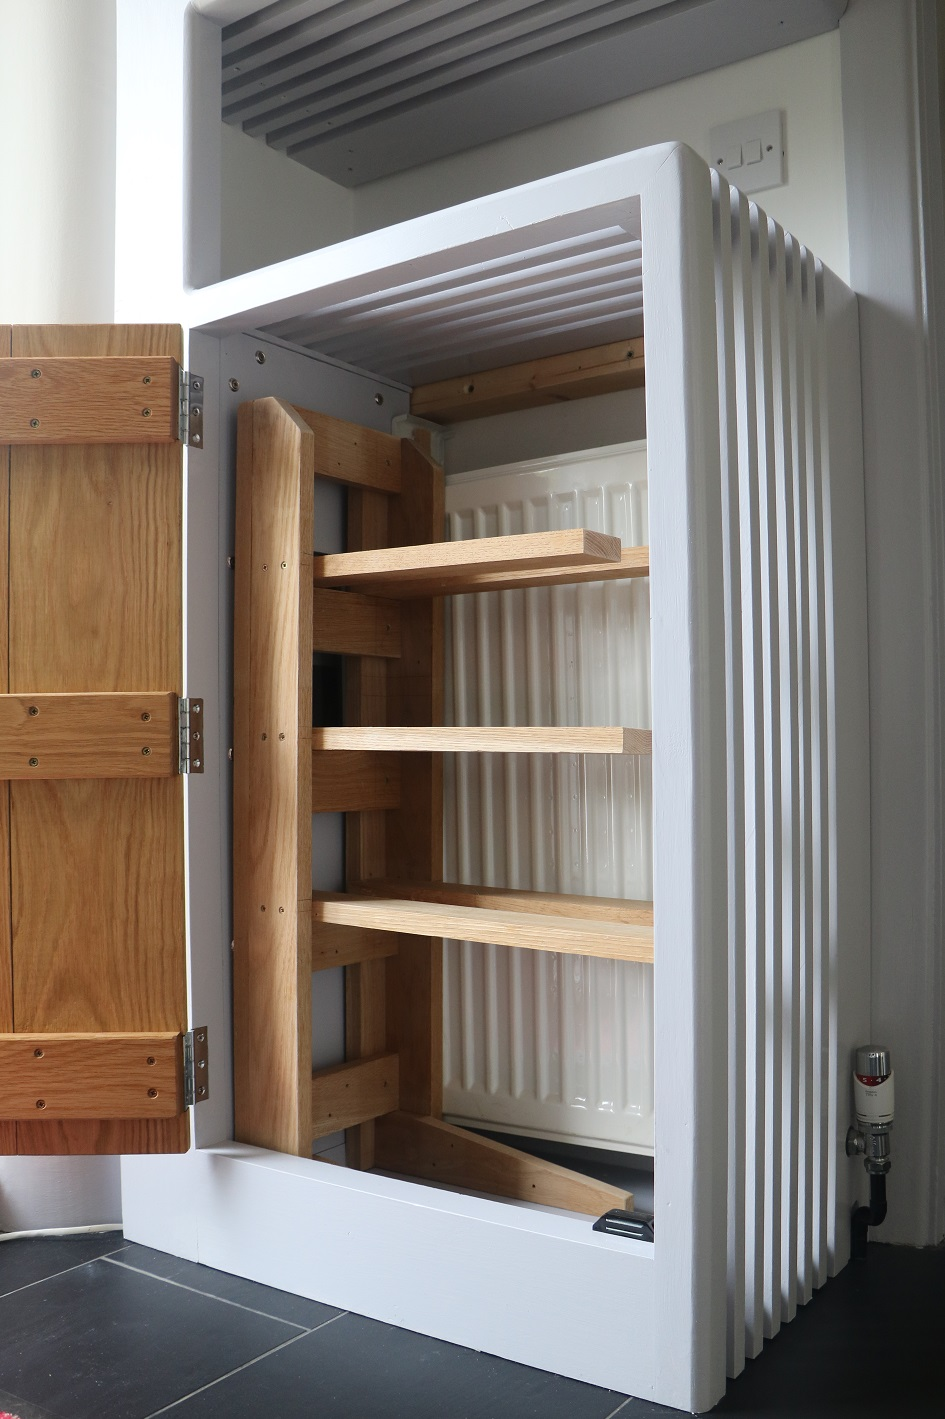 Design | Cabinet in the Entrance Hall